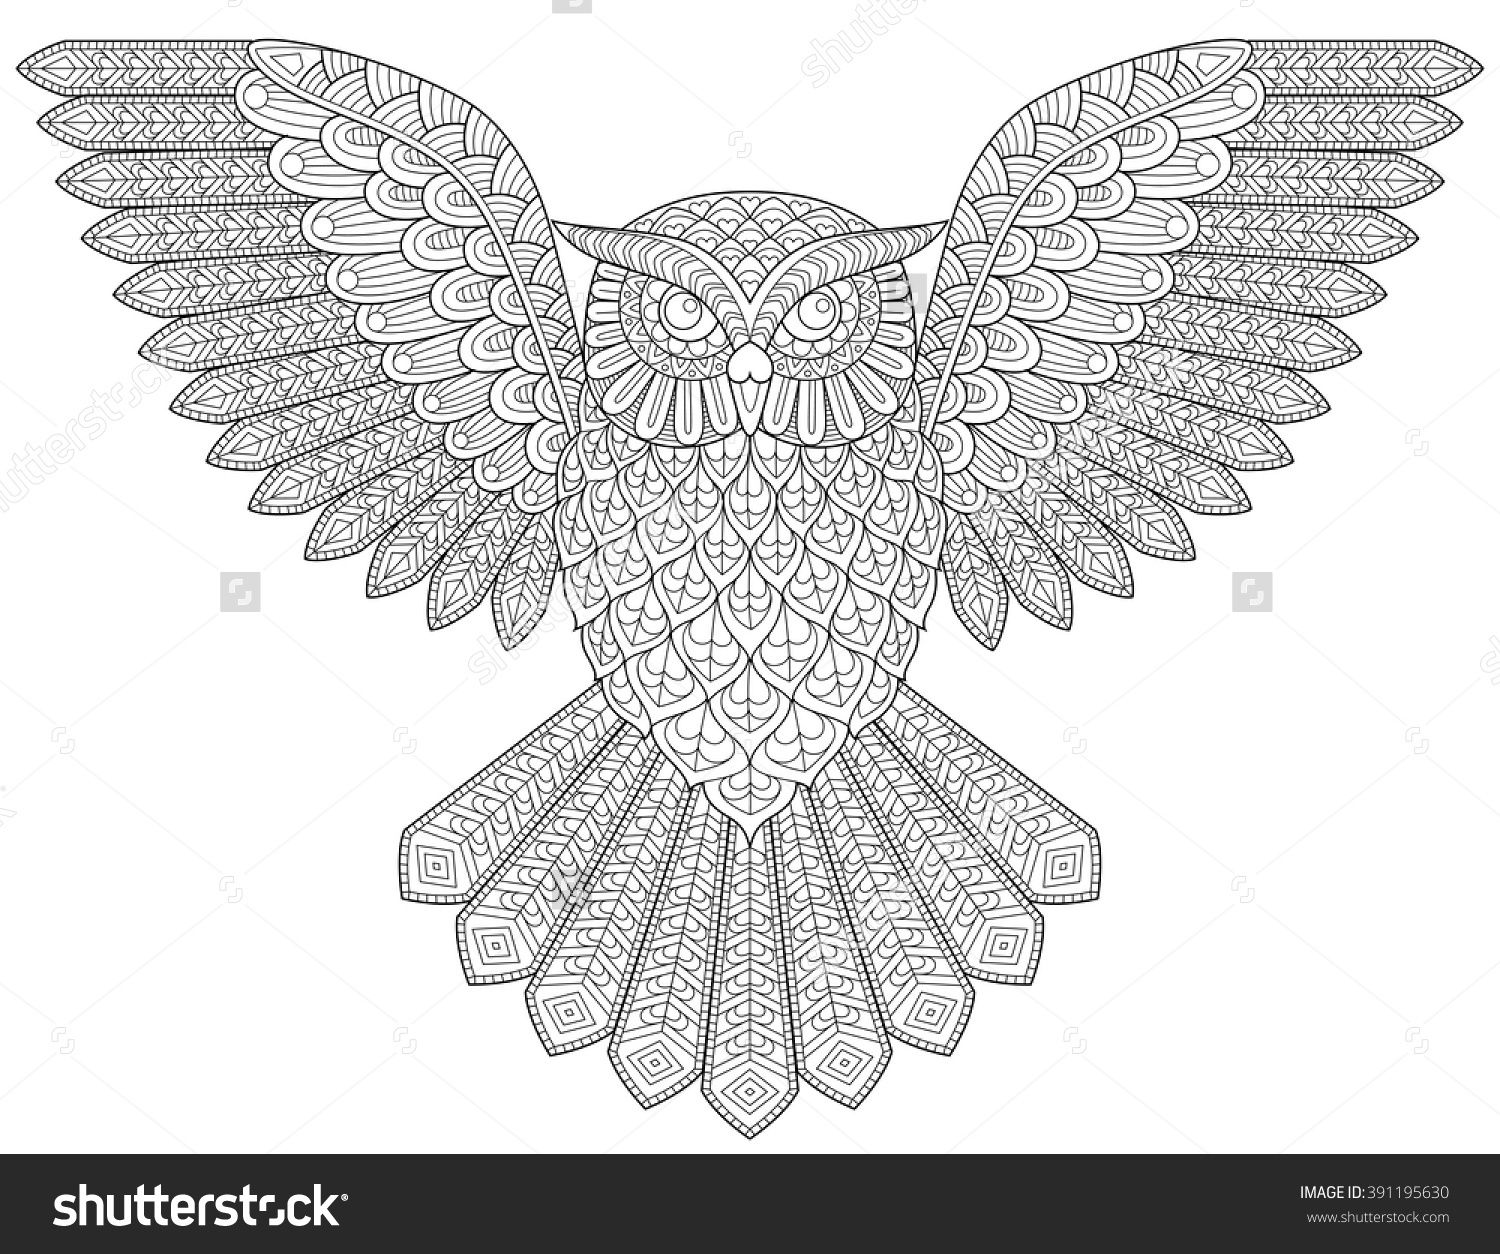 Flying Owl Adult Antistress Coloring Page Black And White Hand Drawn Illustration For Book